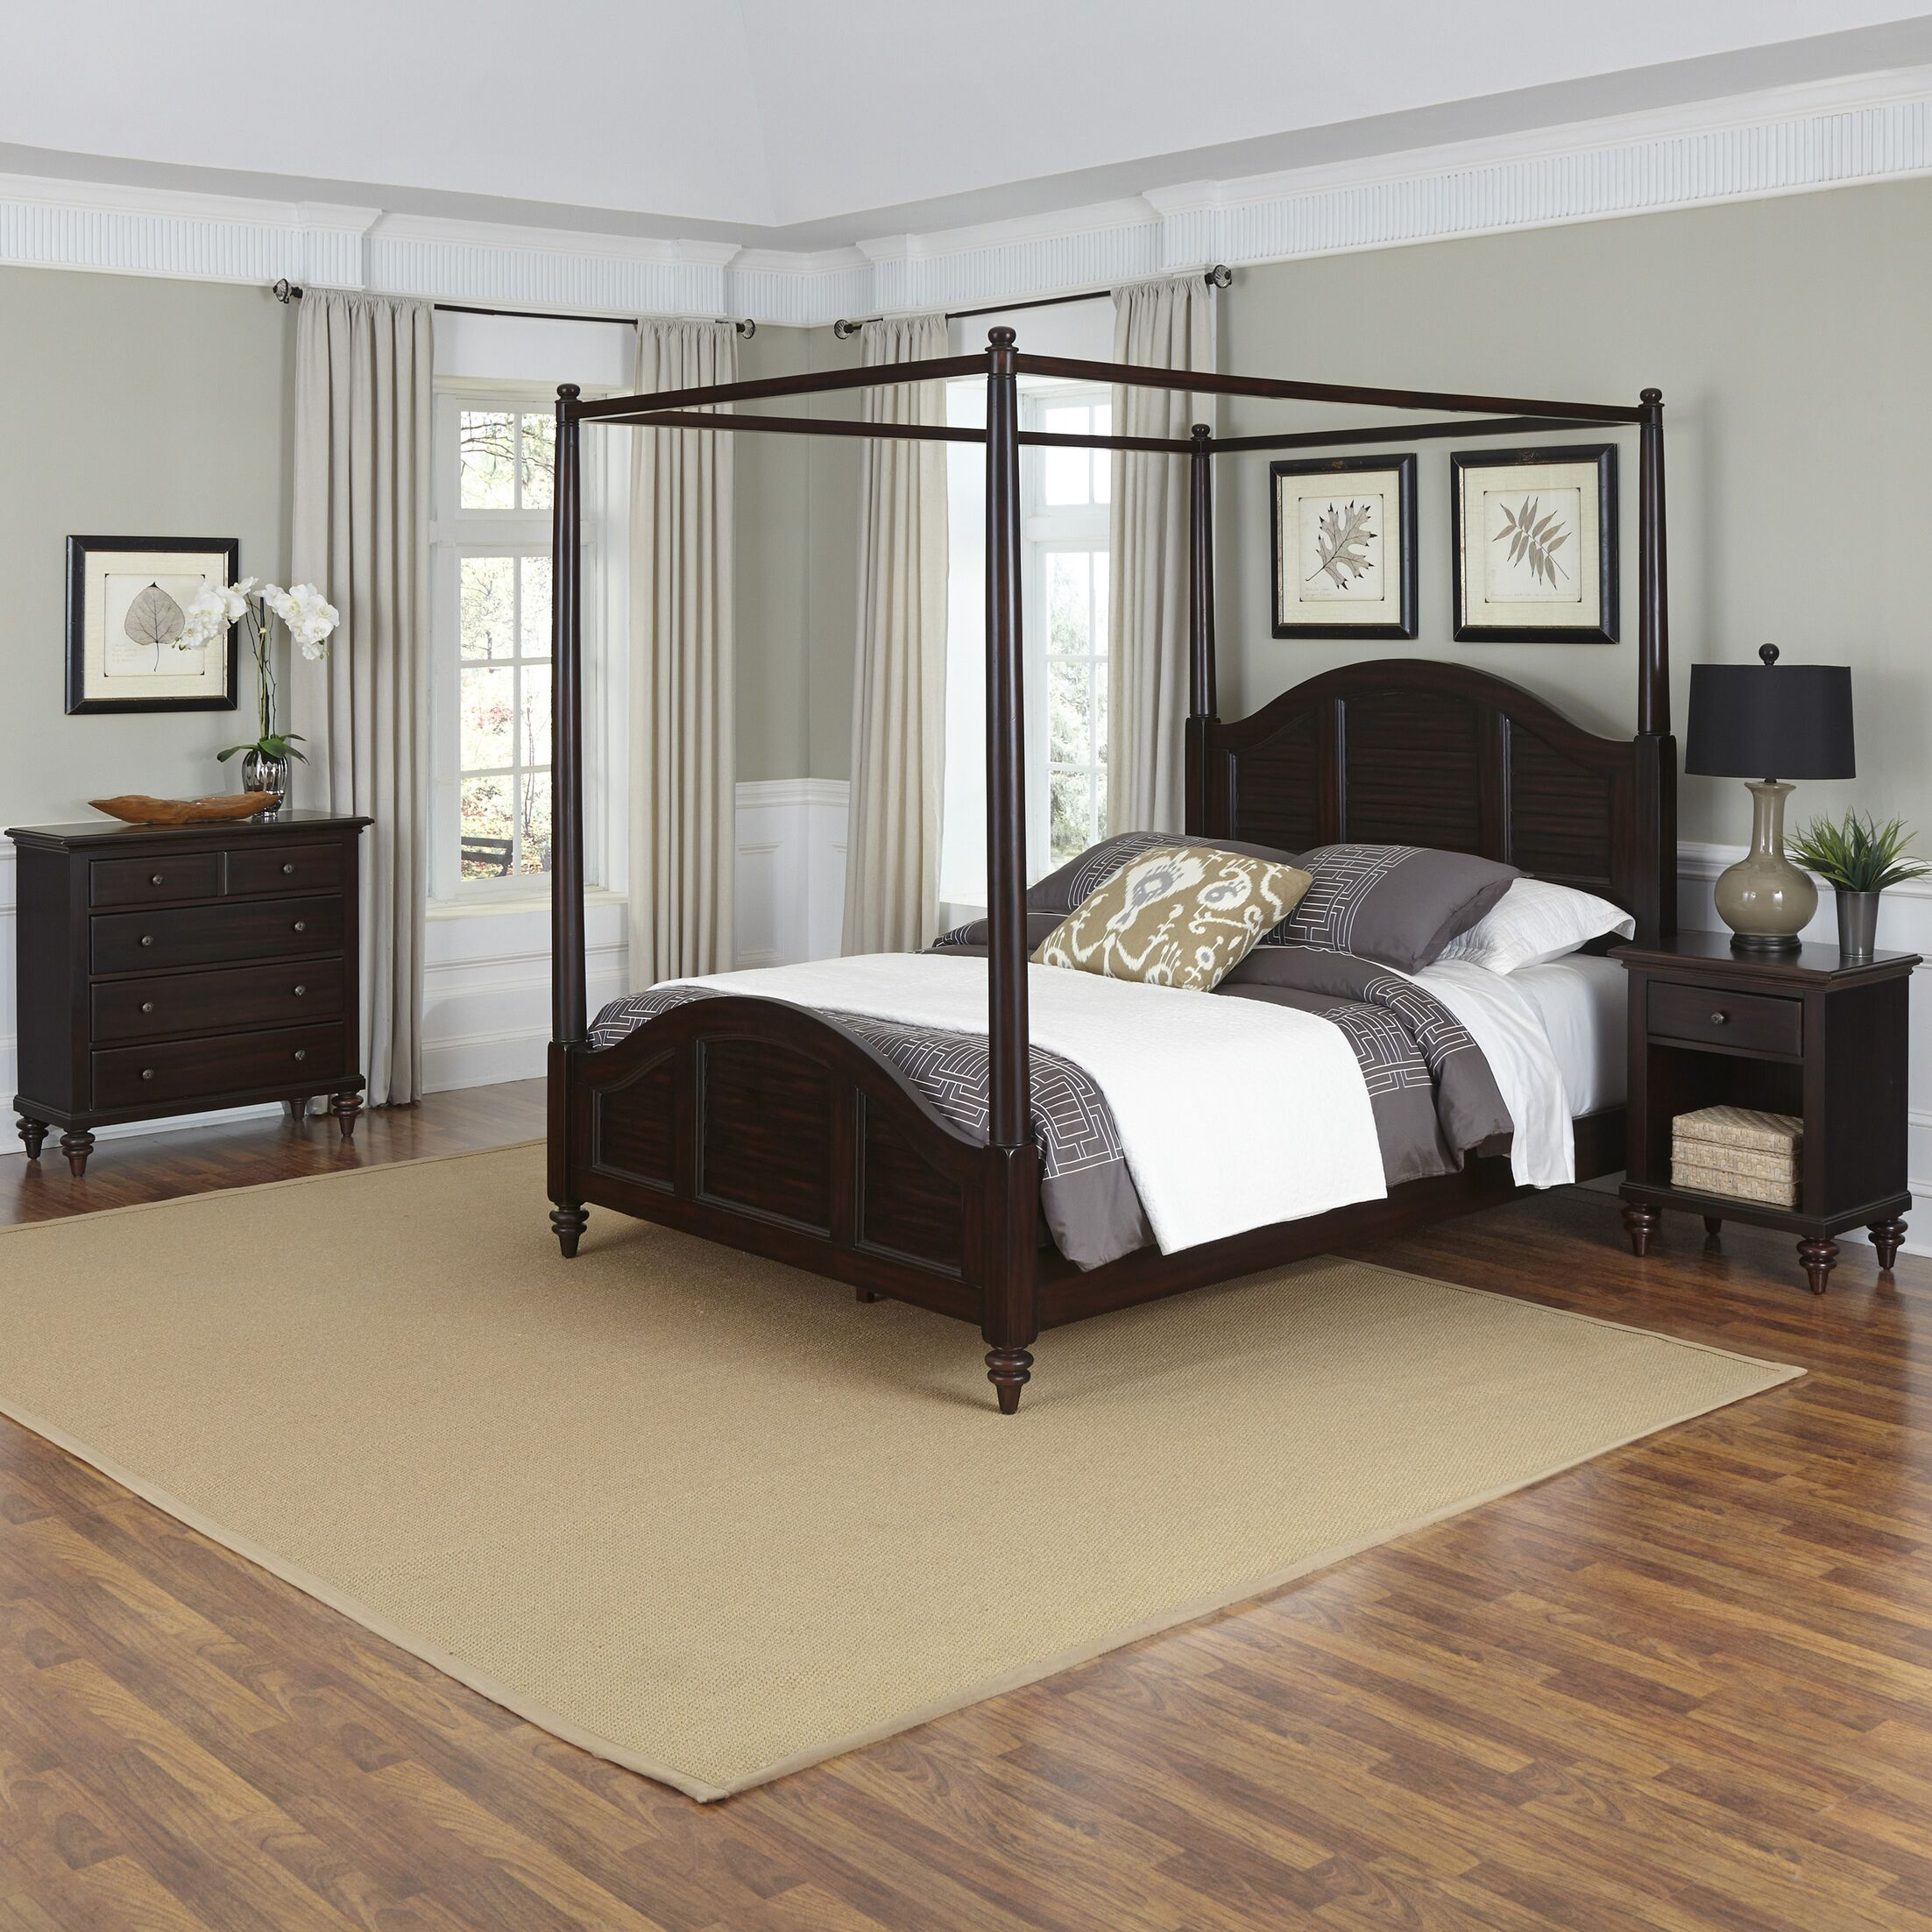 Harrison Canopy 3 Piece Mahogany Bedroom Set Size: King, Color: White